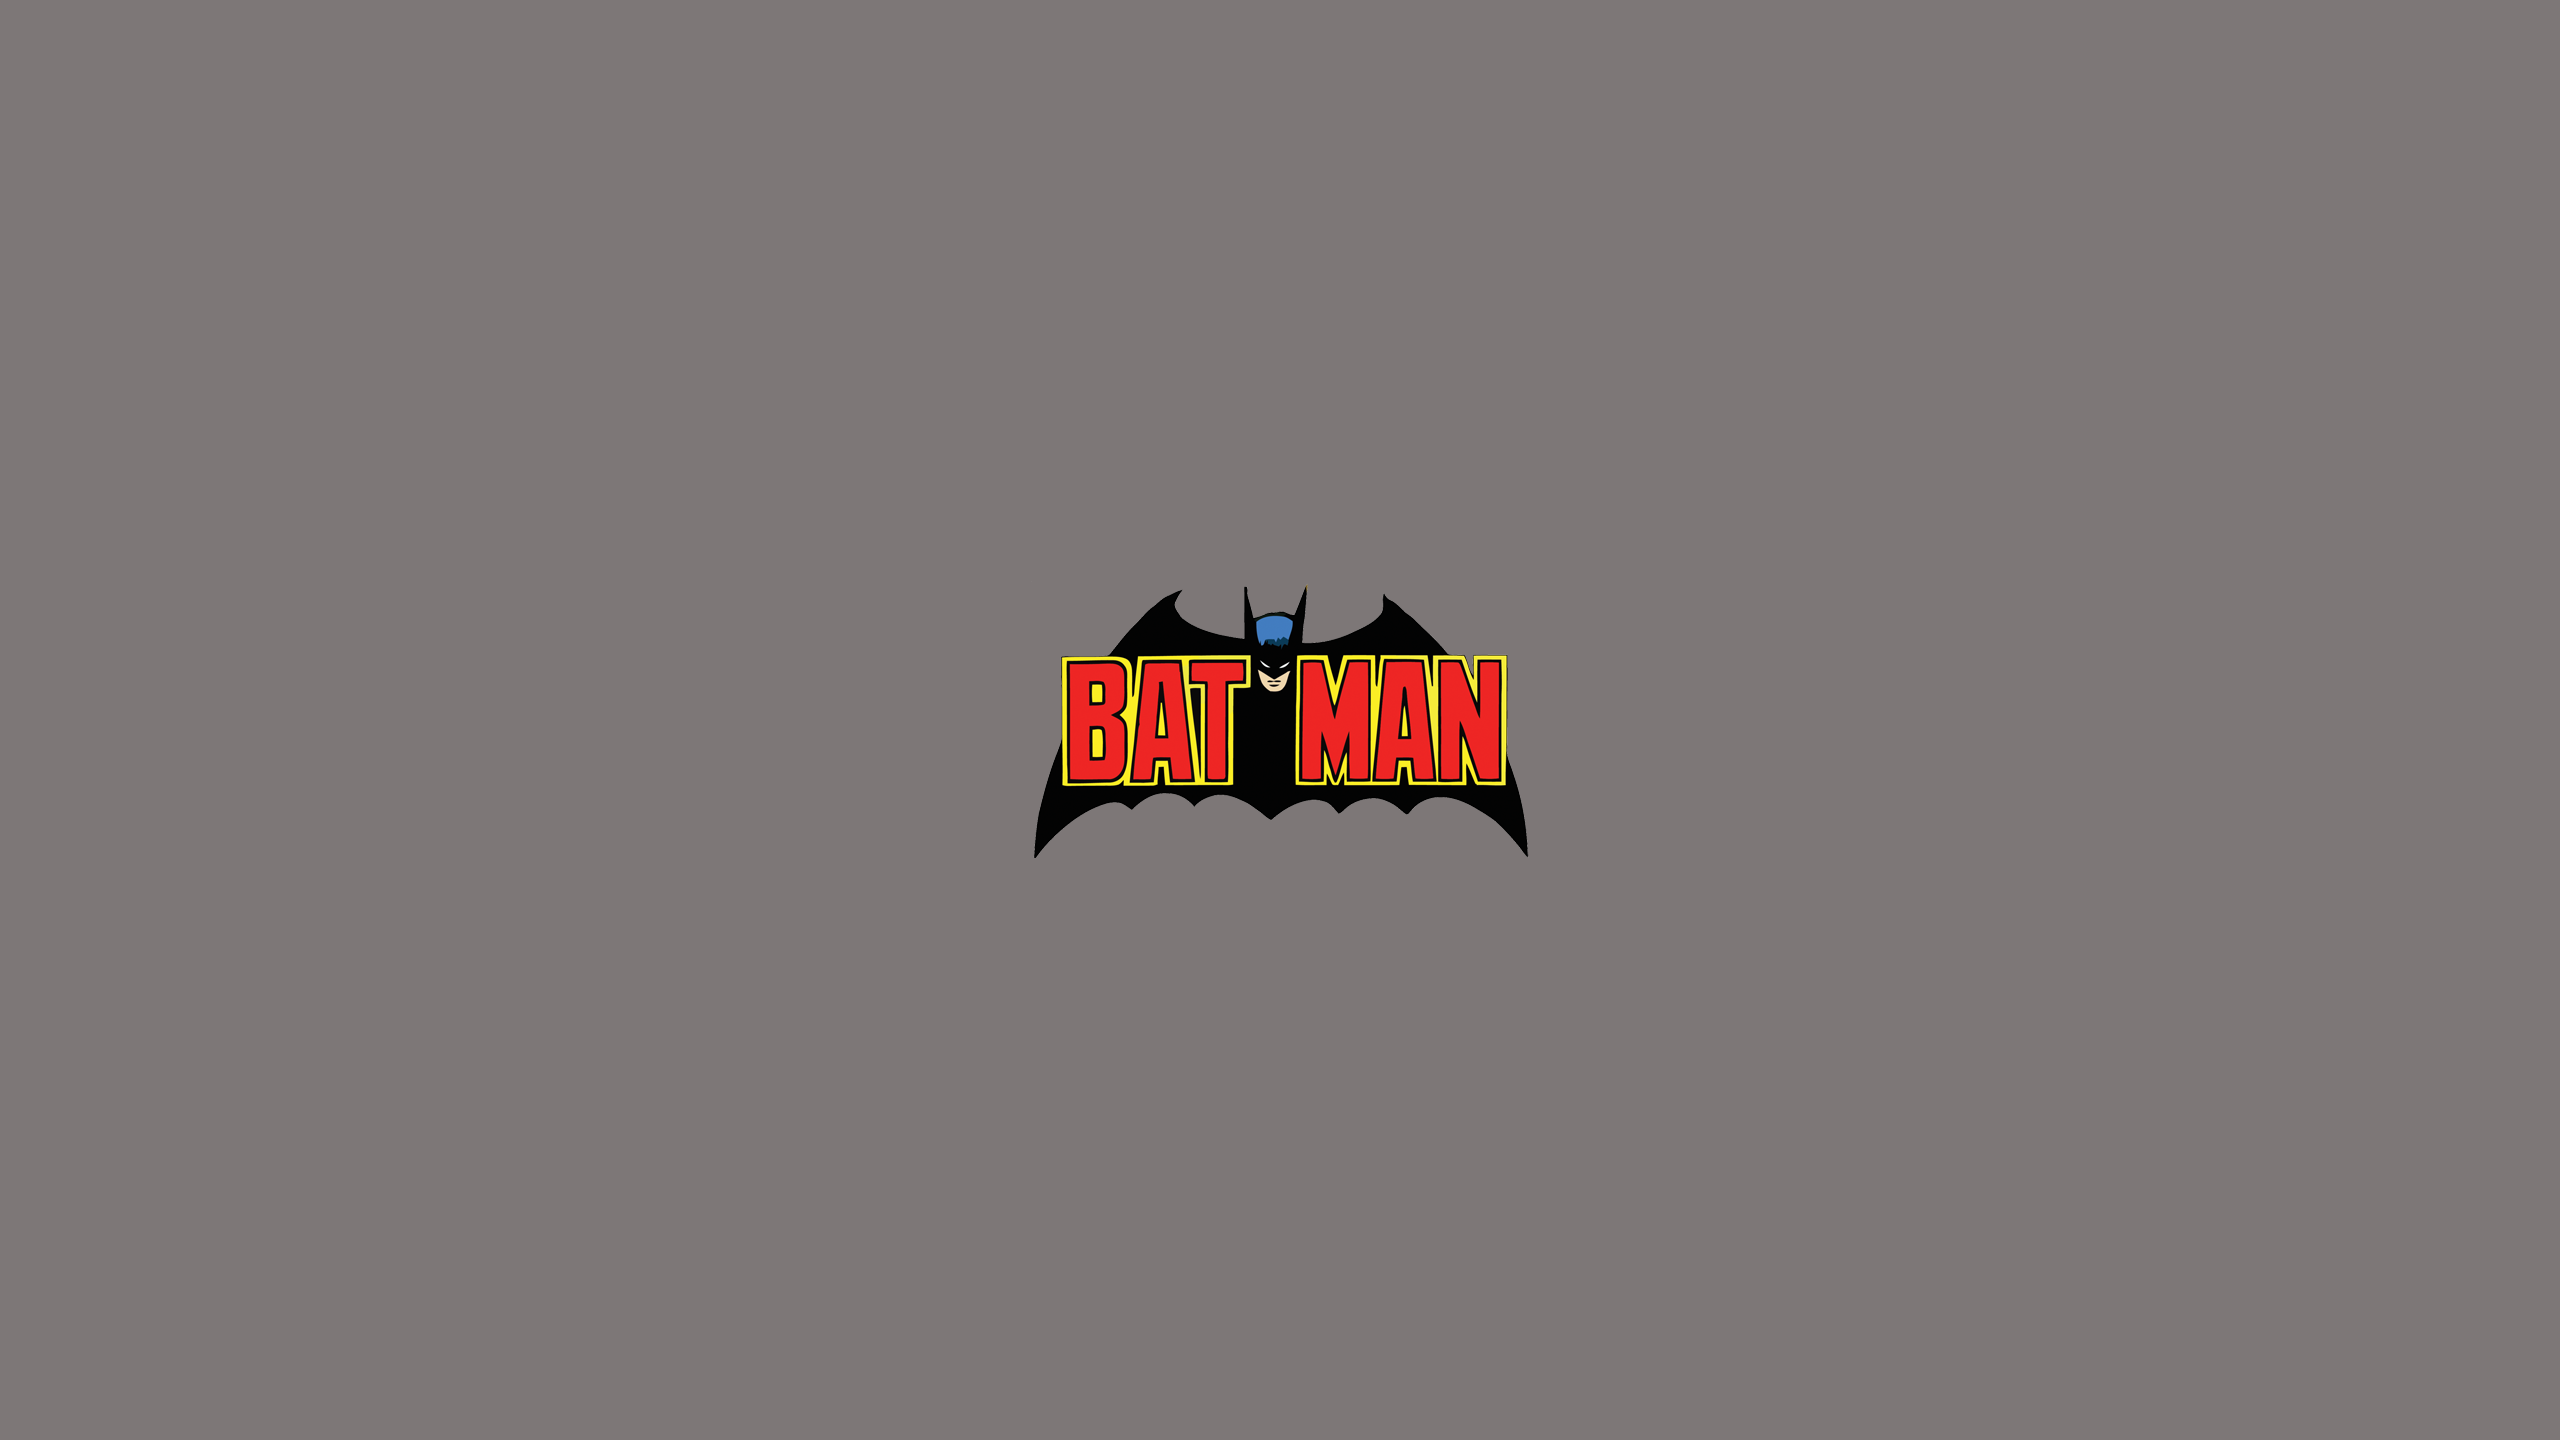 Batman (Old Comics Logo)